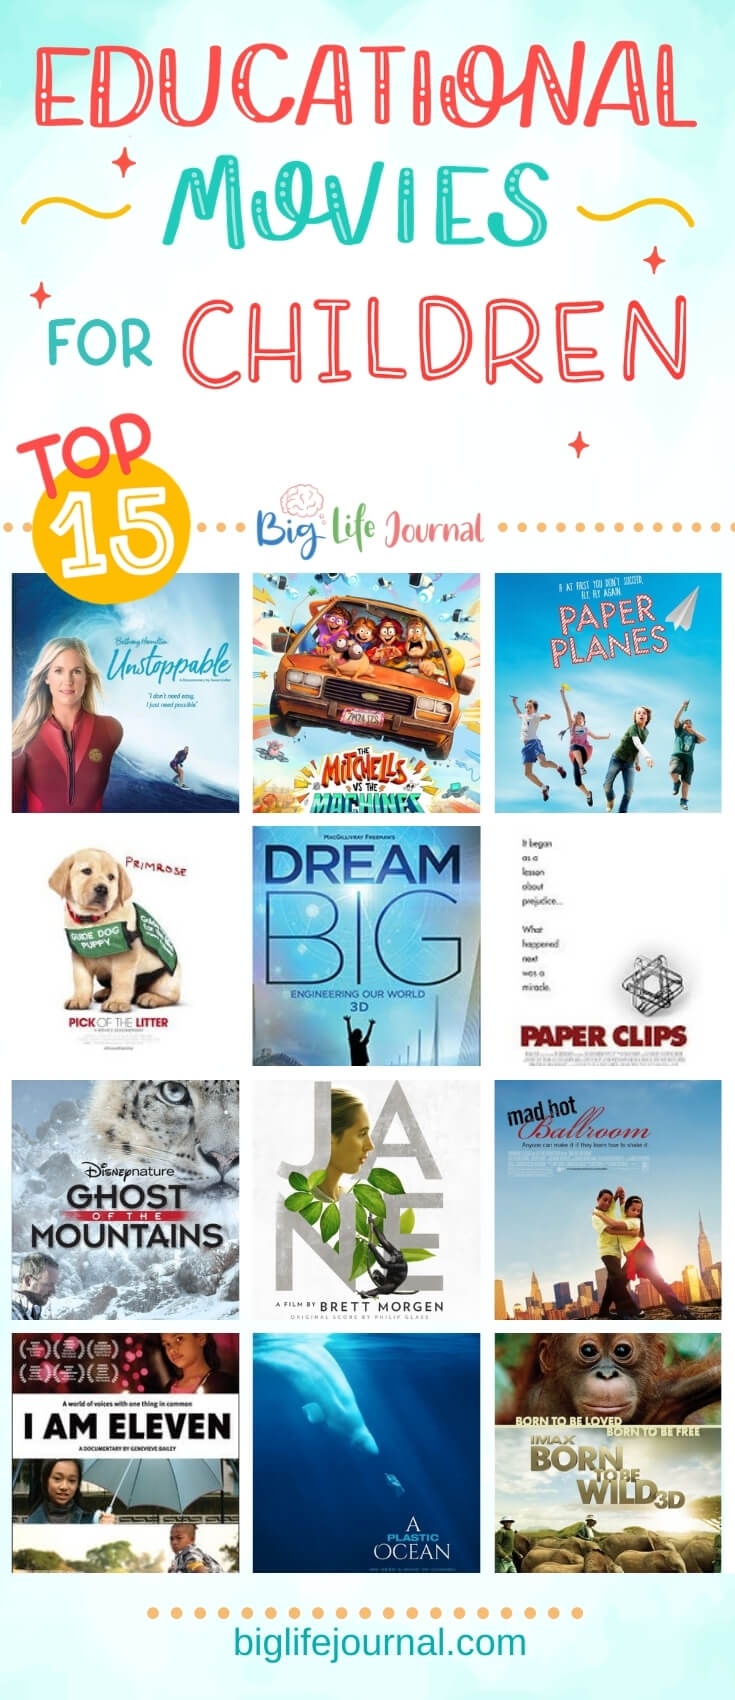 15 Educational Movies for Children